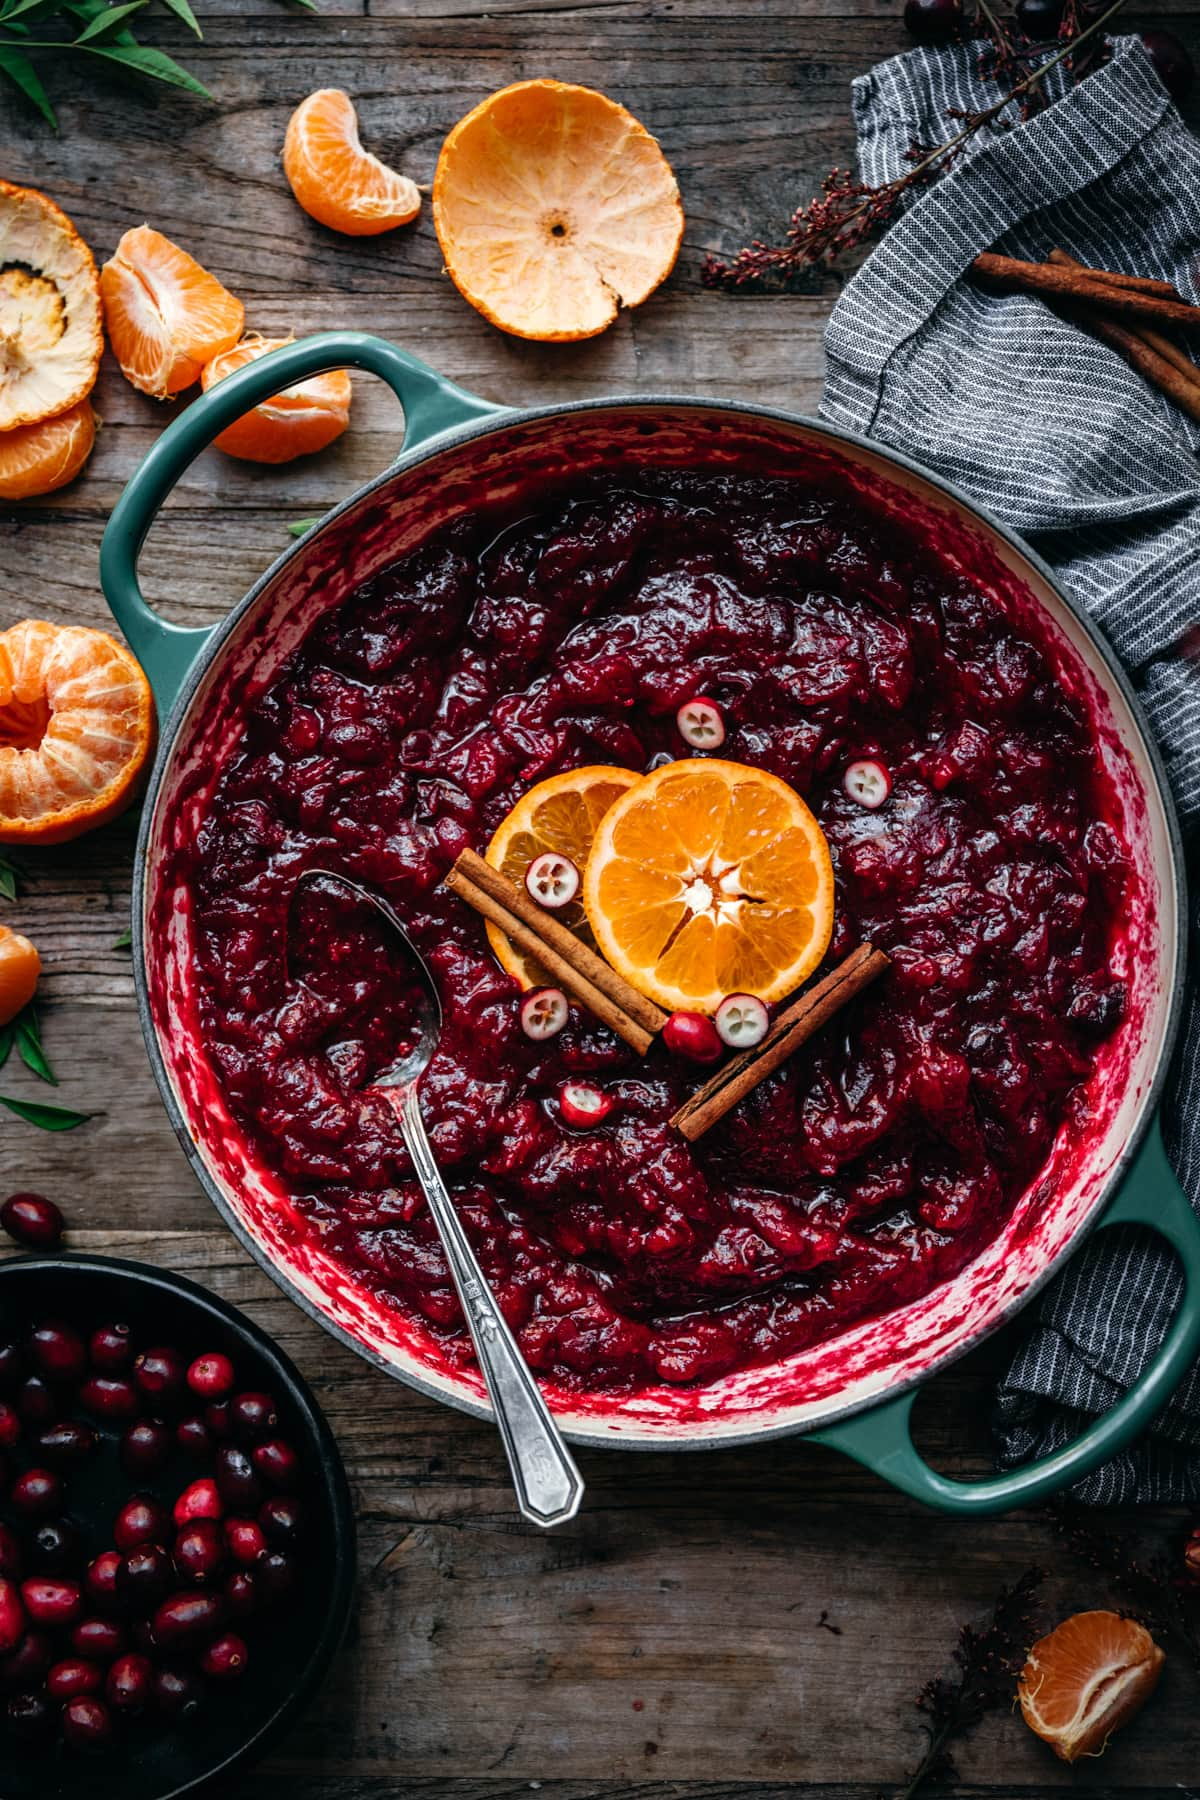 overhead view of cranberry sauce in a large pot garnished with orange slice and cinnamon stick.